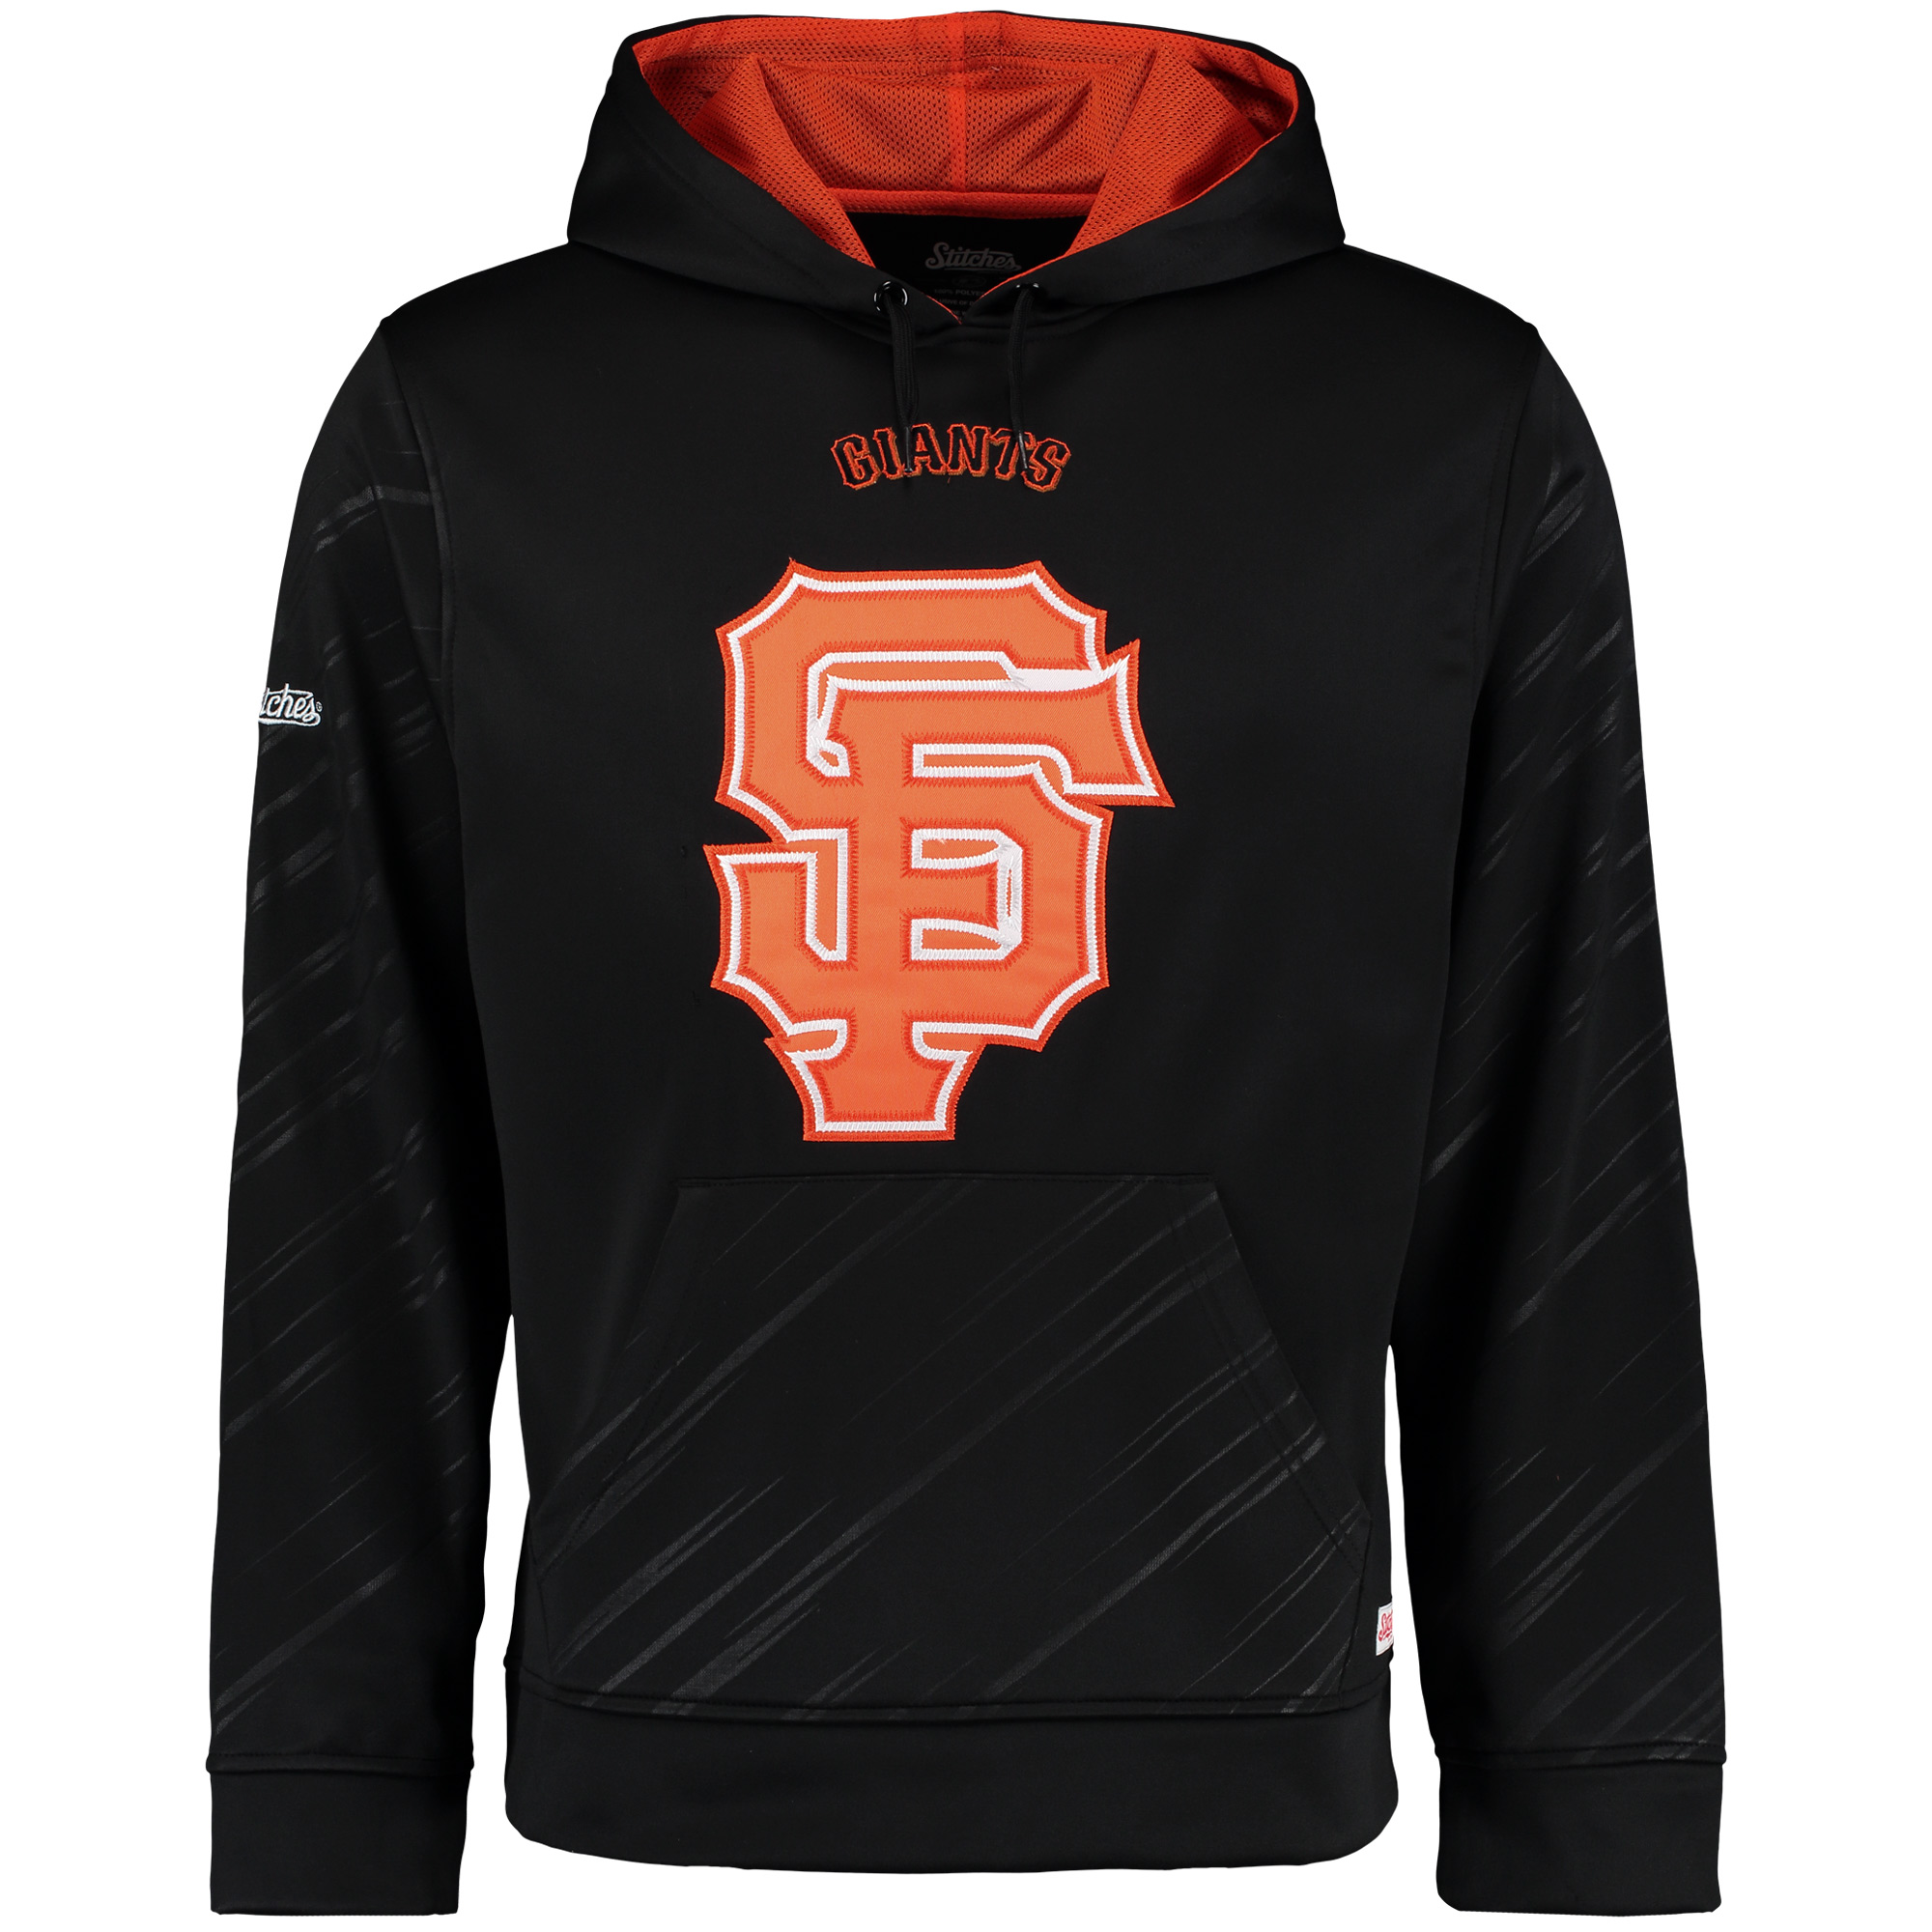 San Francisco Giants Stitches Pullover Fleece Hoodie with Contrast Hood - Black